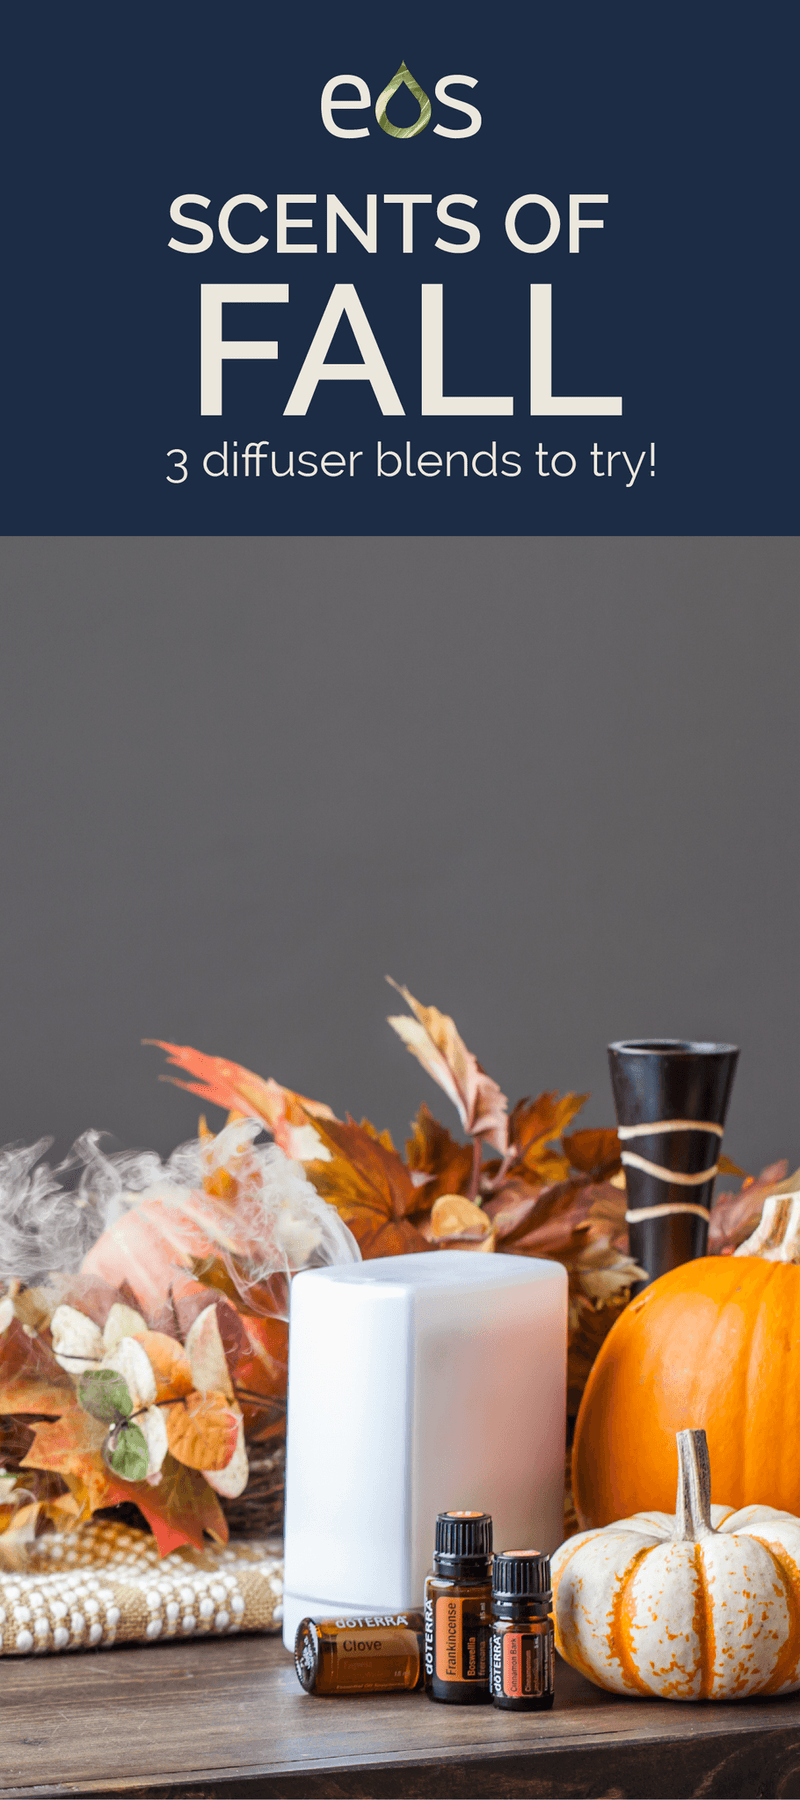 Smells Like Fall! 3 Diffuser Blends to Try